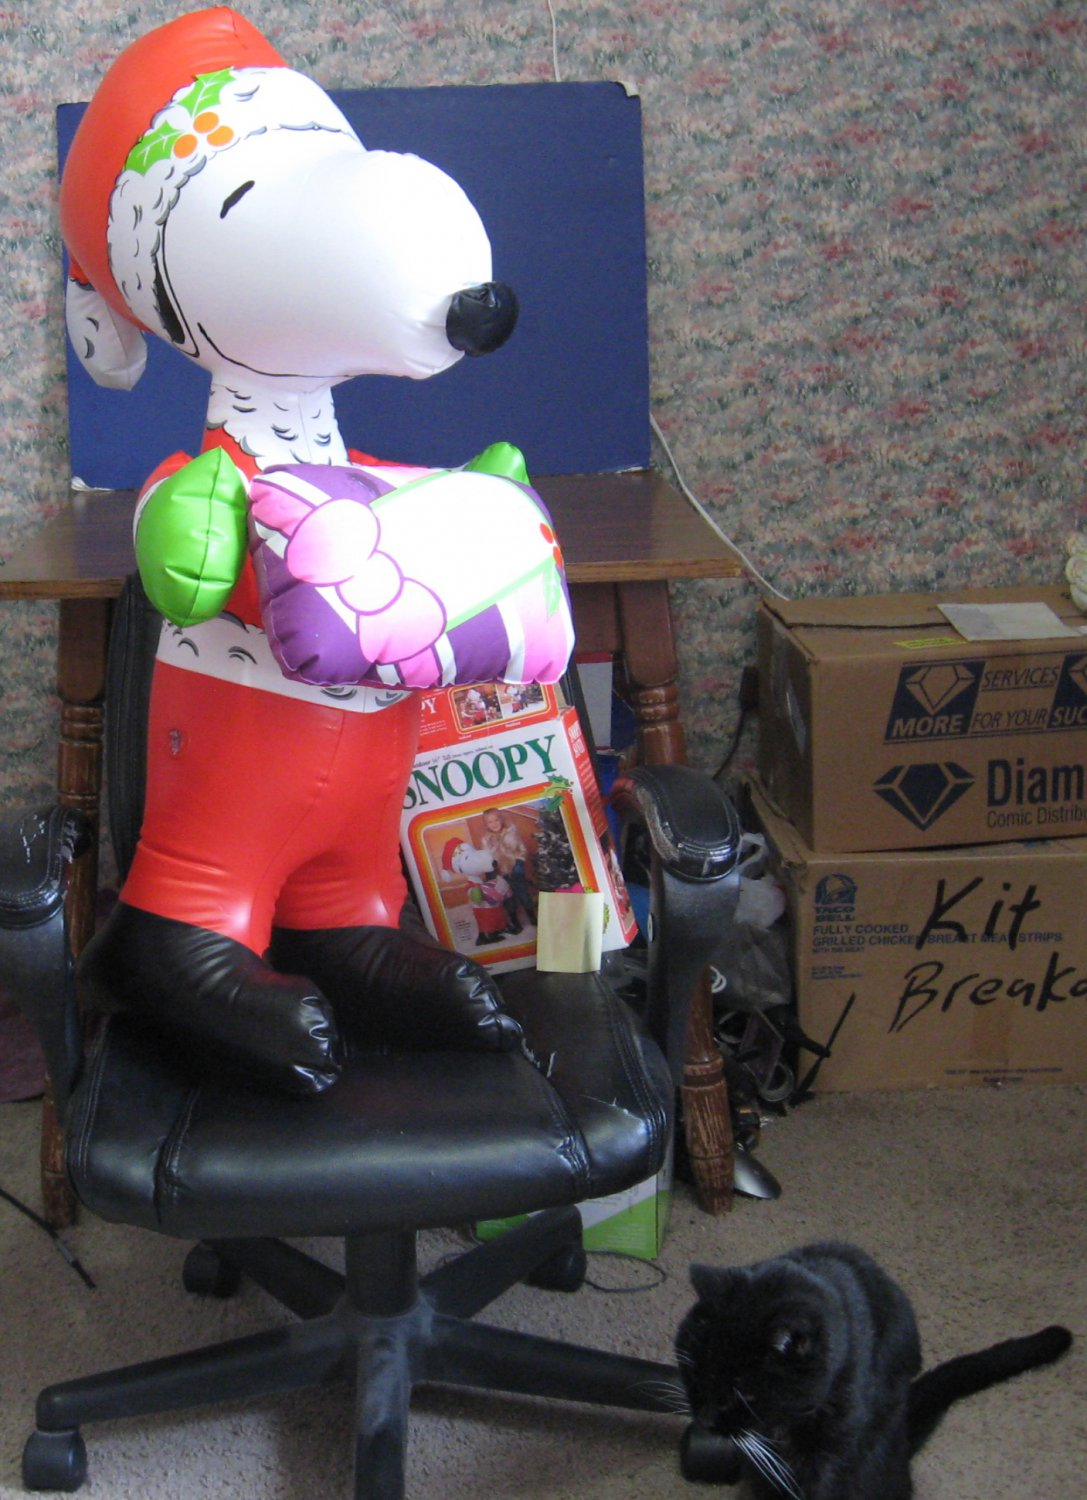 Peanuts Giant Inflatable Vinyl Snoopy As Santa Clause